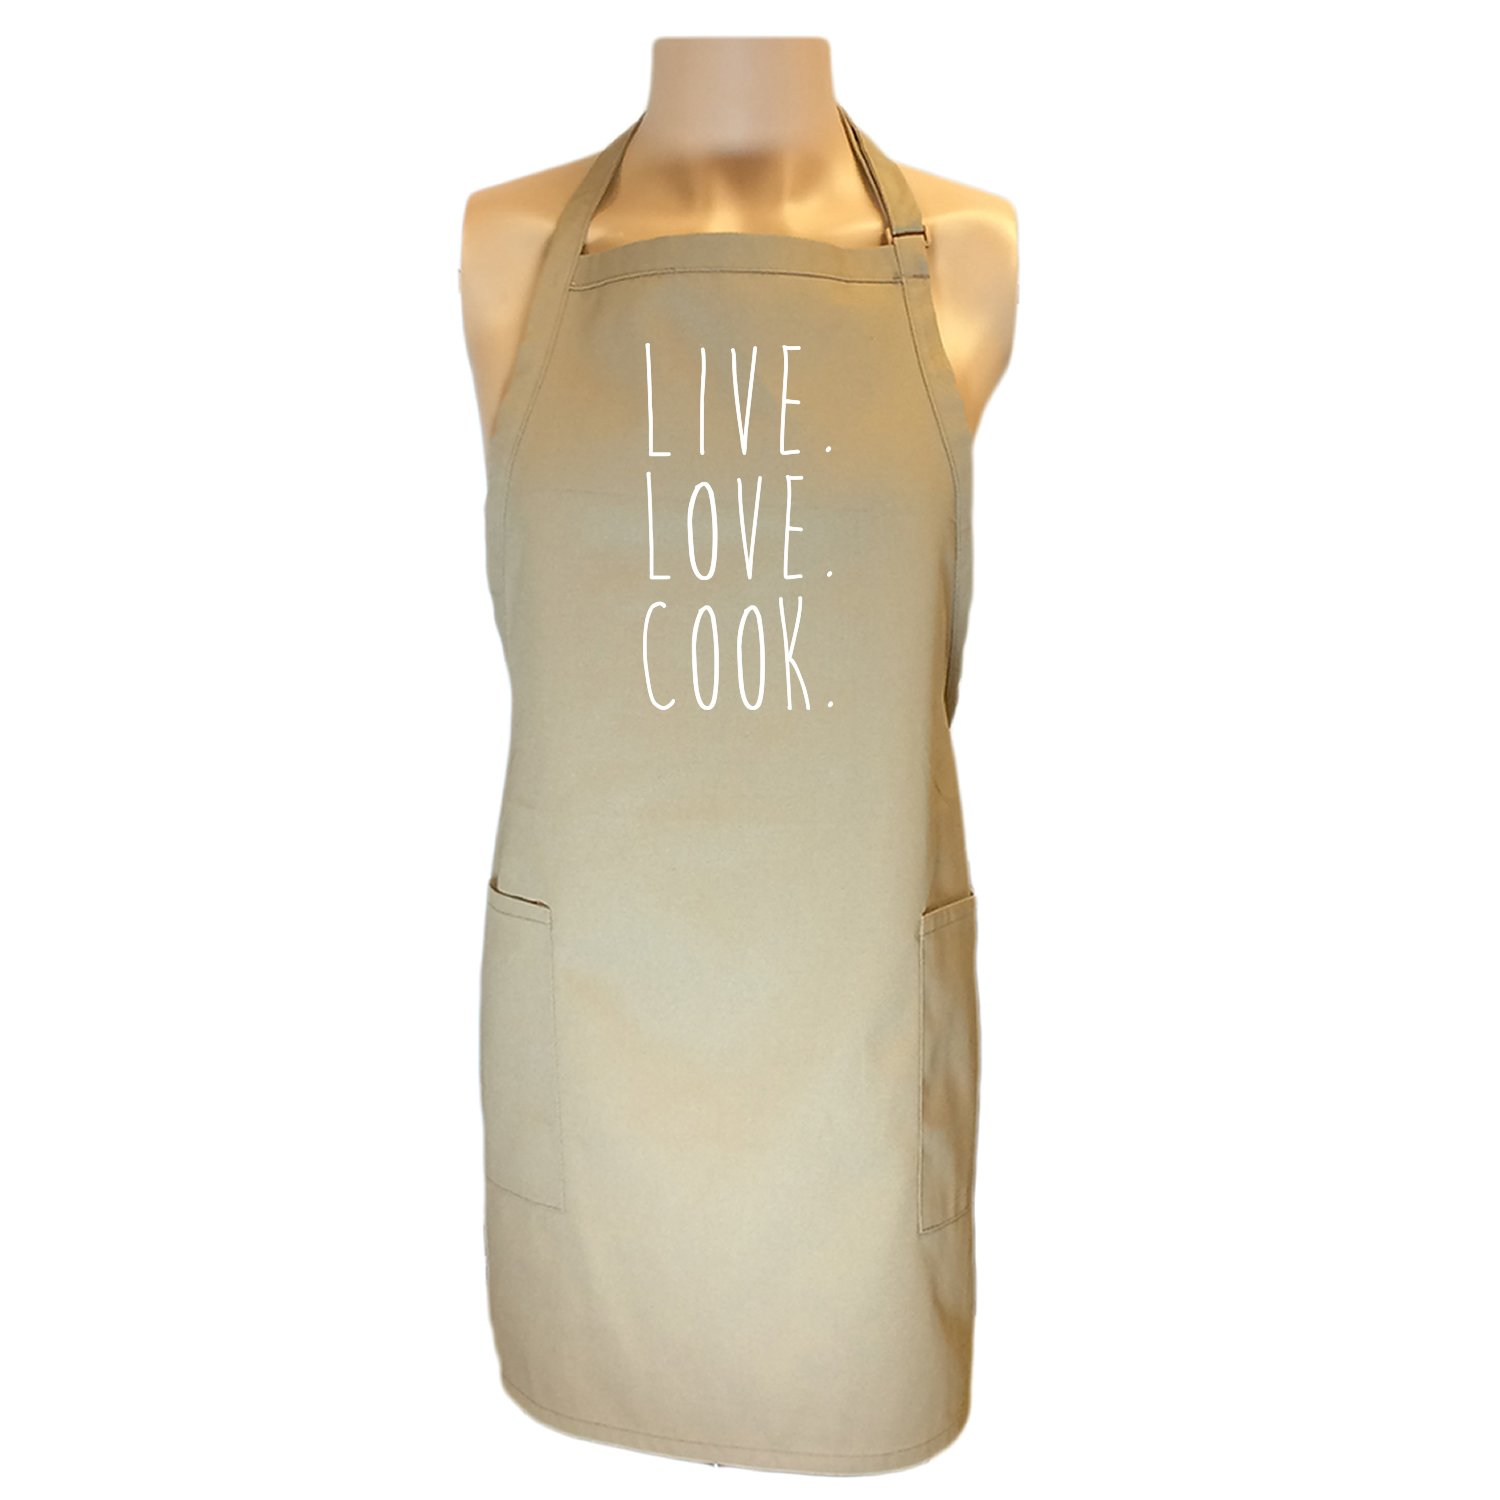 Live. Love. Cook. Apron with 2 patch pockets in Khaki - One Size